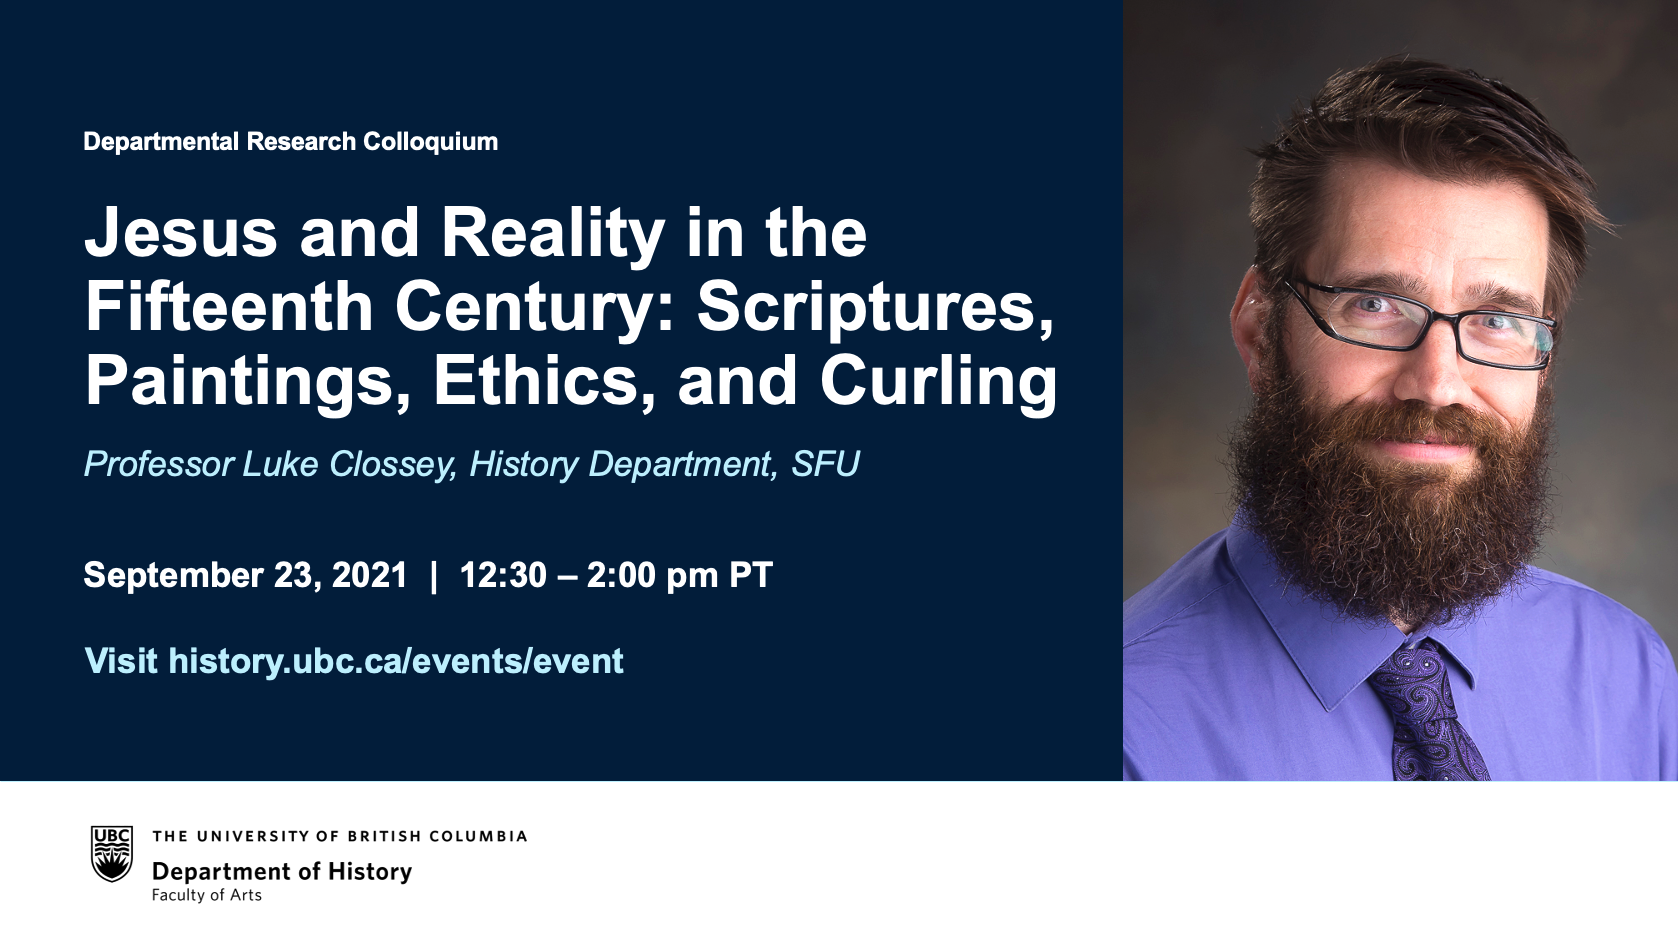 https://history.ubc.ca/wp-content/uploads/sites/23/2021/09/Research-Colloquium-Clossey.png